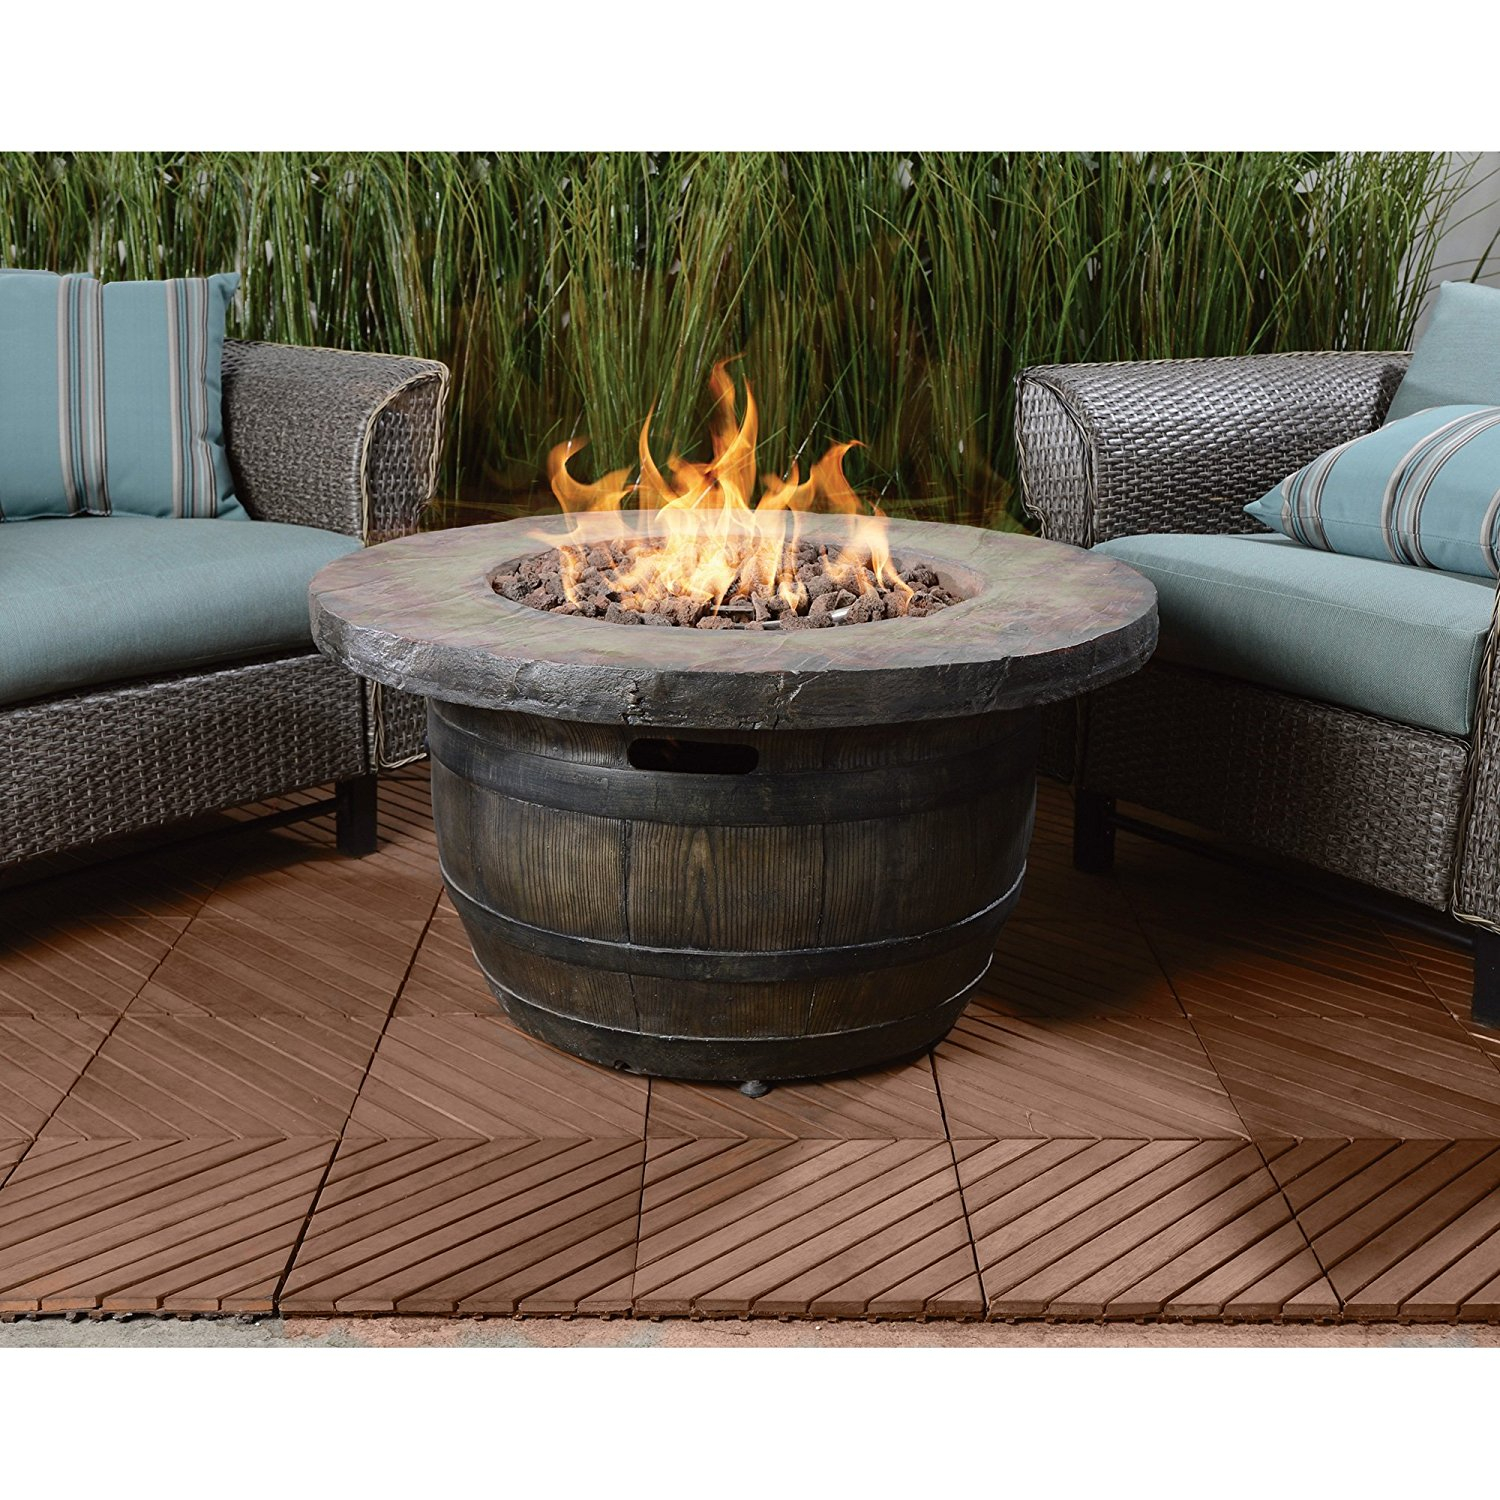 Best Fire Pit Of 2019 Reviews And Analysis Expert throughout measurements 1500 X 1500